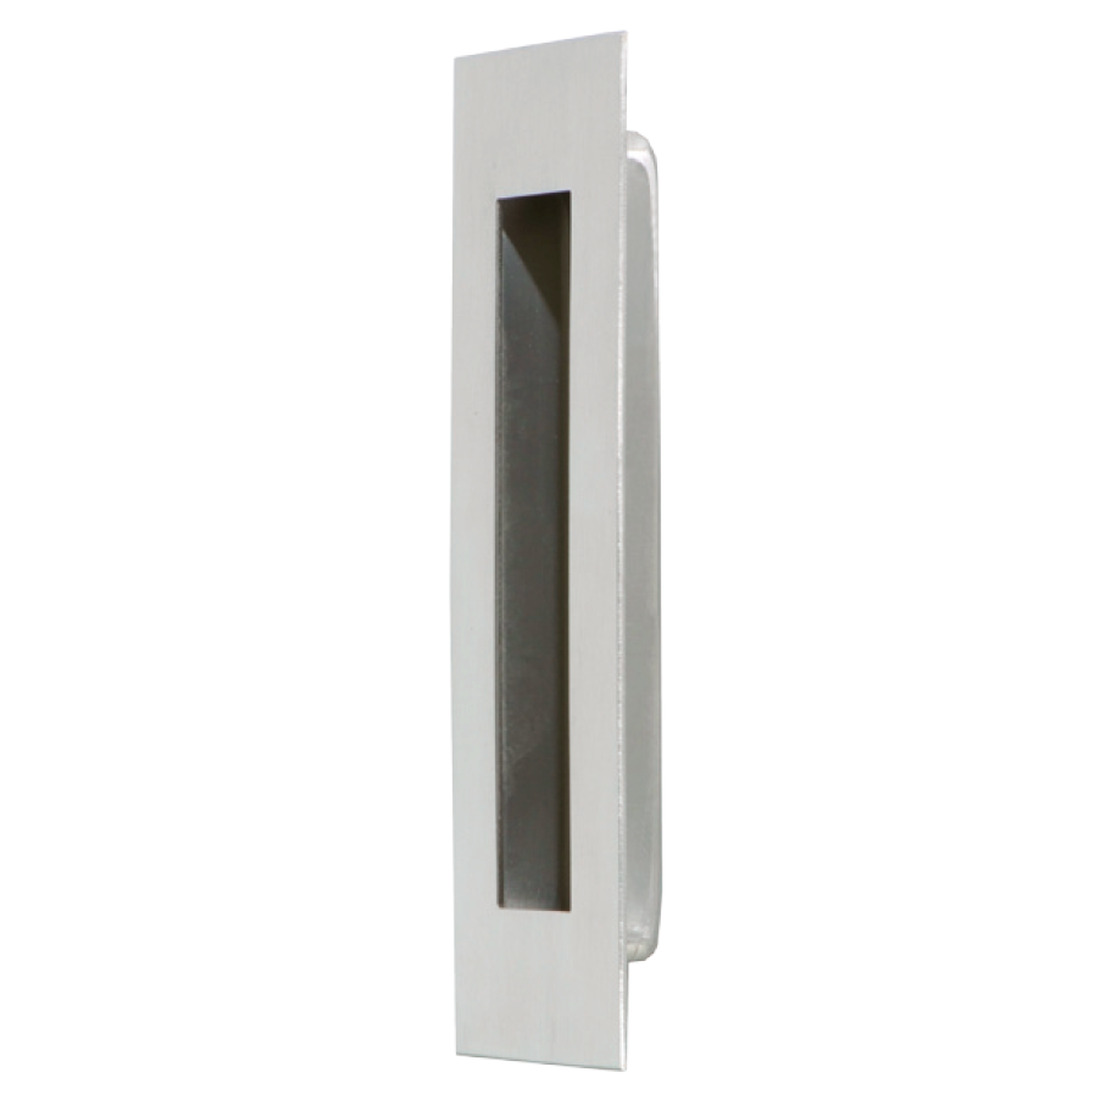 "FLUSH PULL, SATIN STAINLESS STEEL, 5 29/32"" x 1 31/32"""